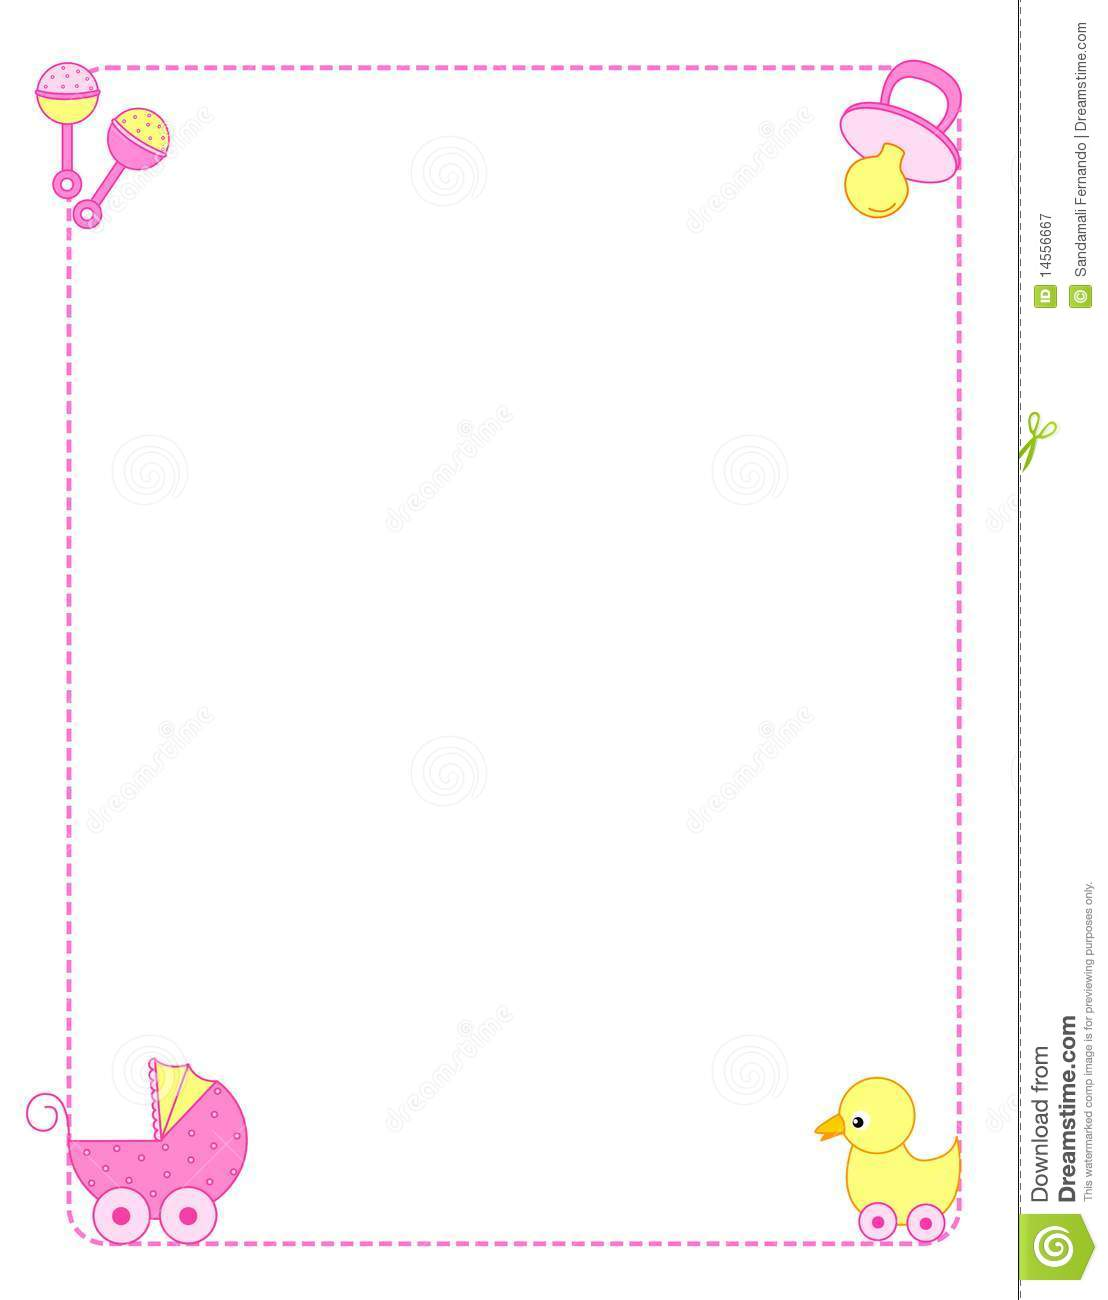 image regarding Free Printable Borders and Frames referred to as lovely printable frames and border clipart 20 absolutely free Cliparts